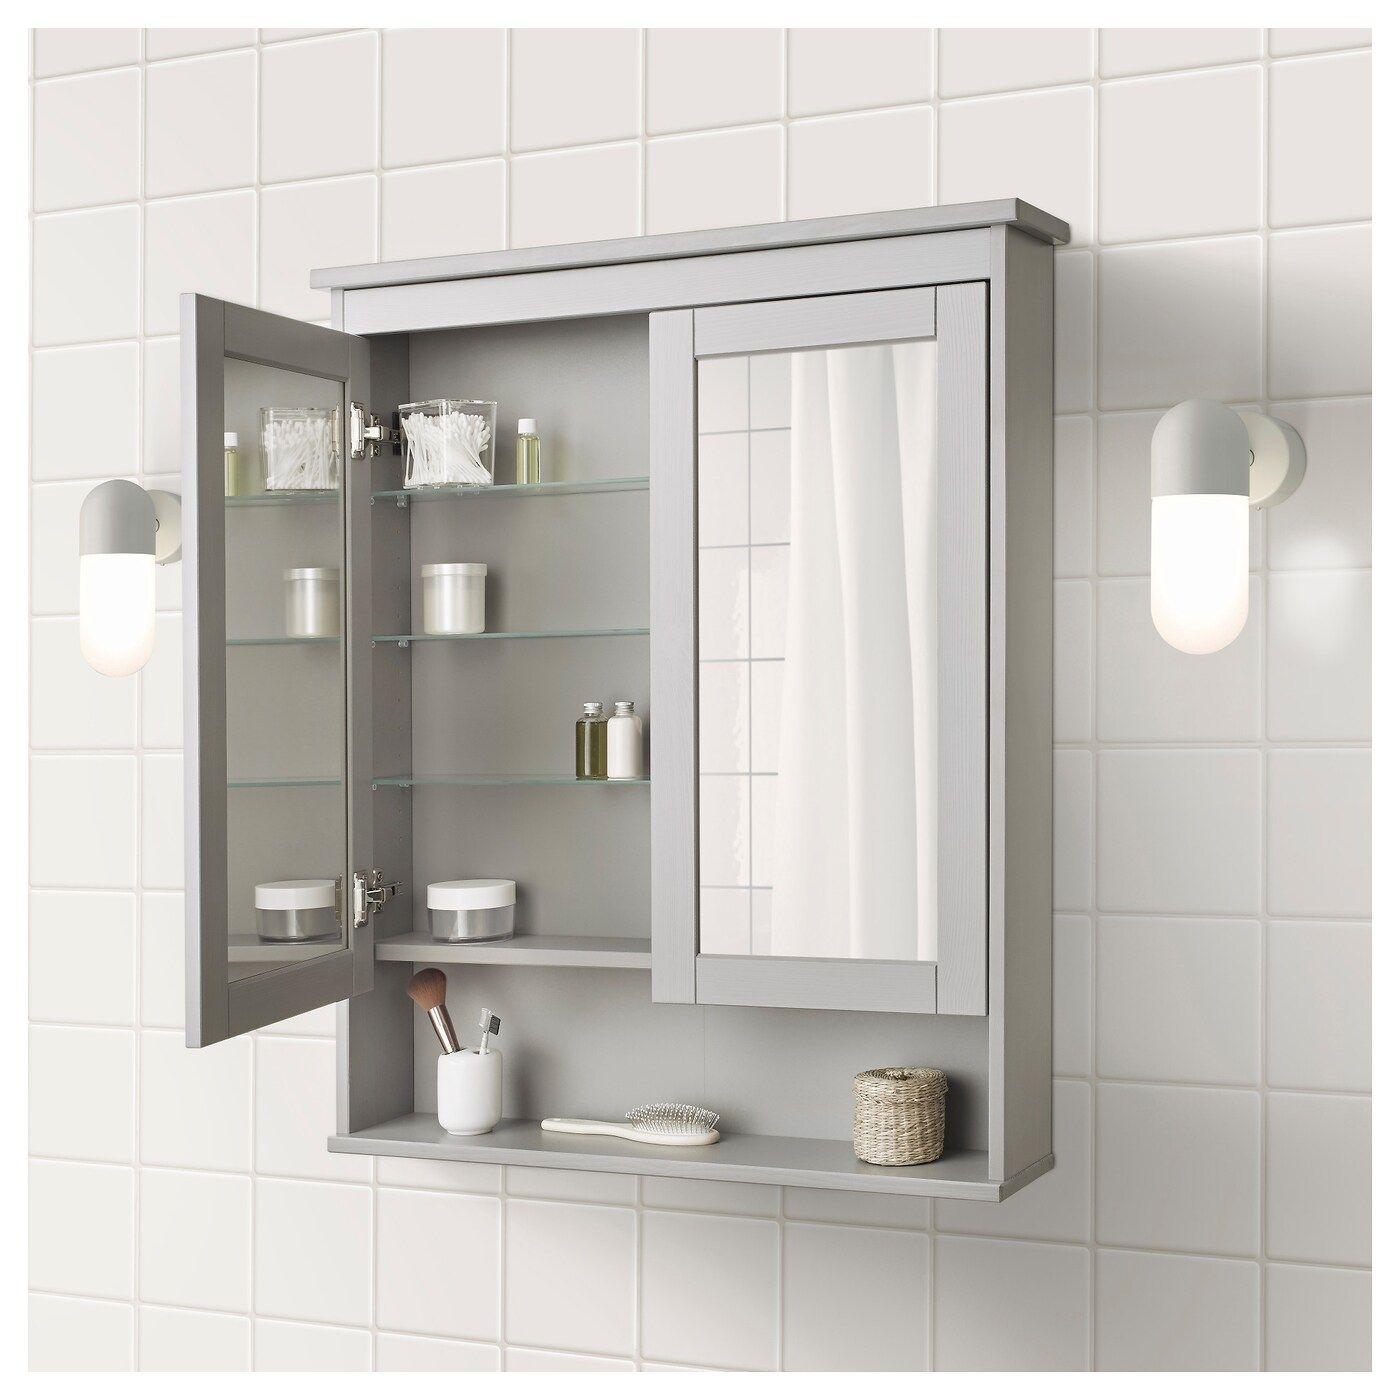 Hemnes Mirror Cabinet With 2 Doors Grey 83x16x98 Cm Bathroom